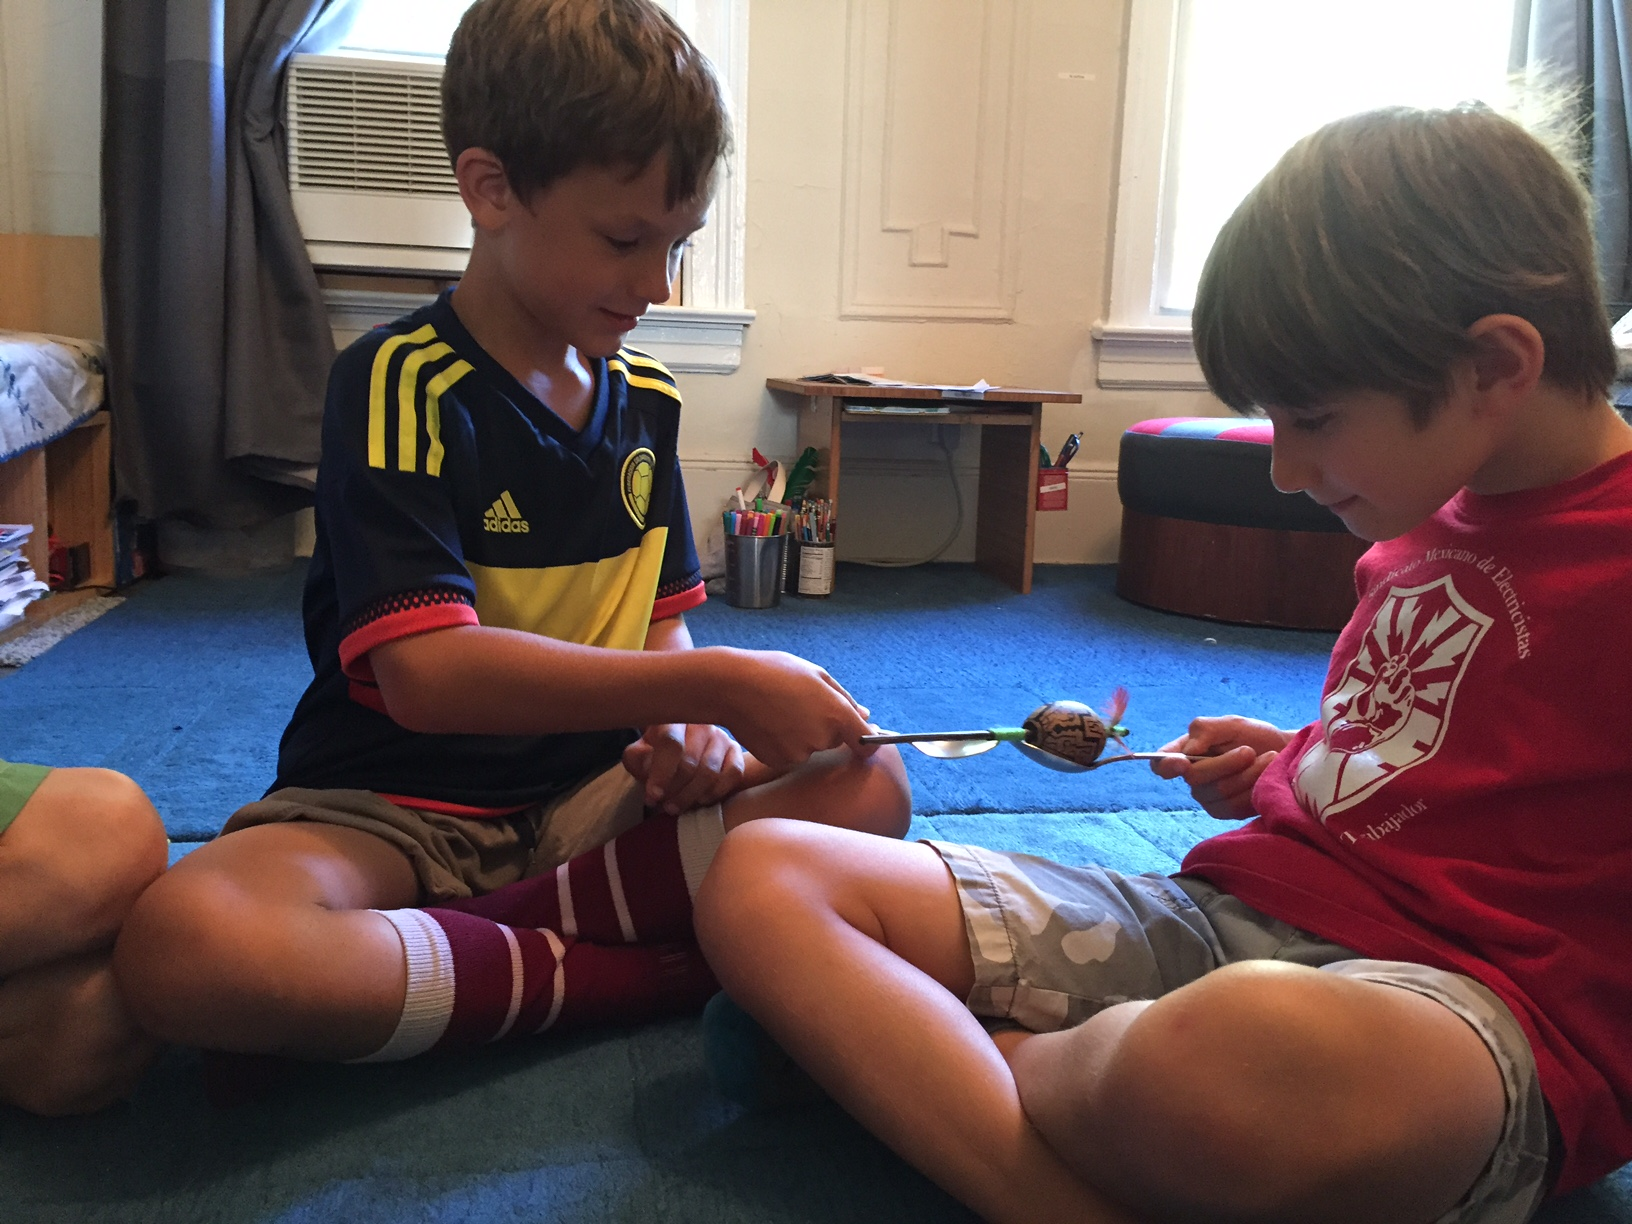 Group games build fine motor skills, focus, self-control and self/other awareness